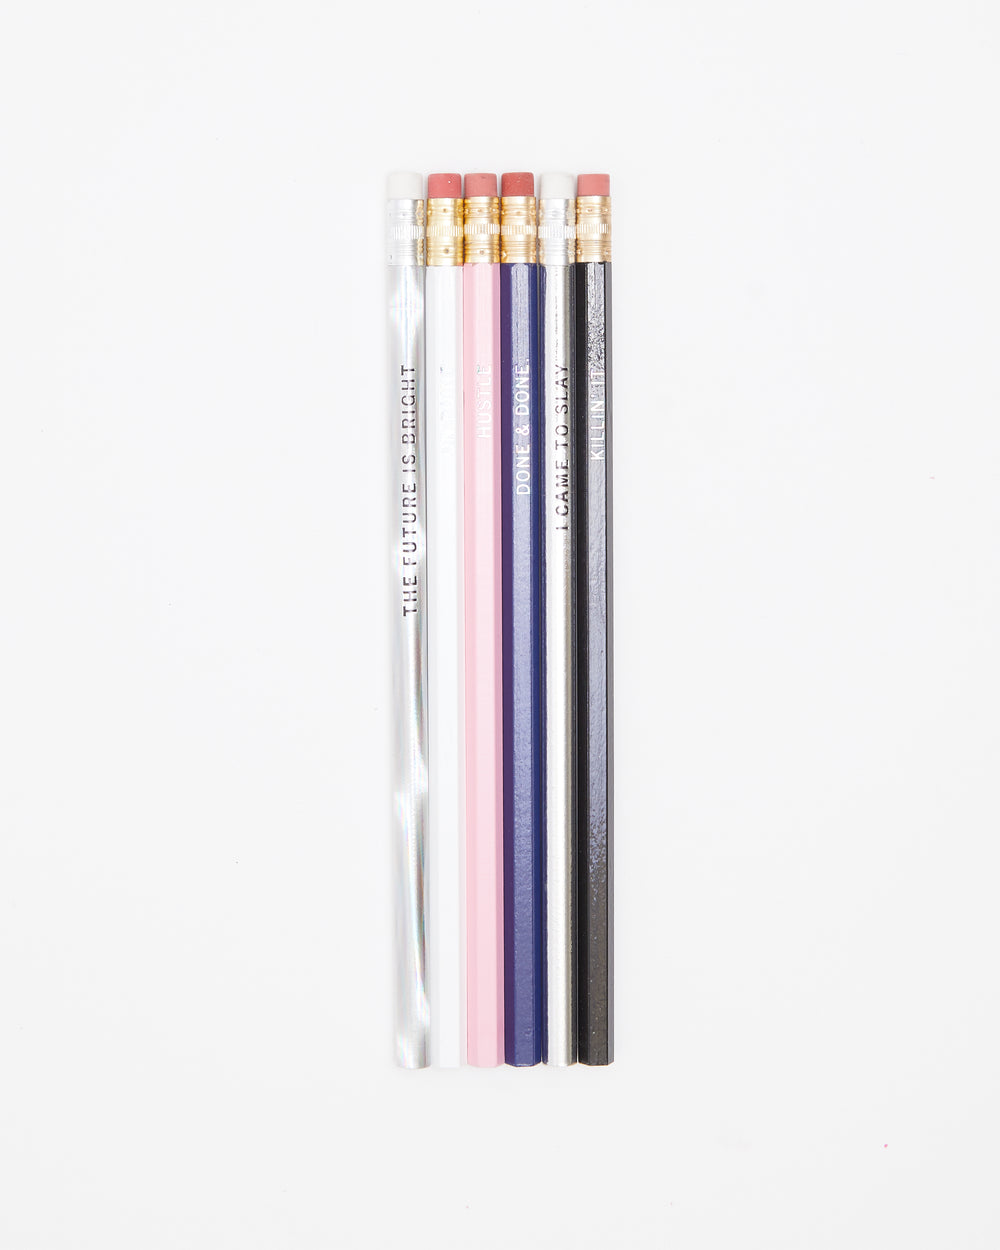 Wildflower + Co Pencil Sets